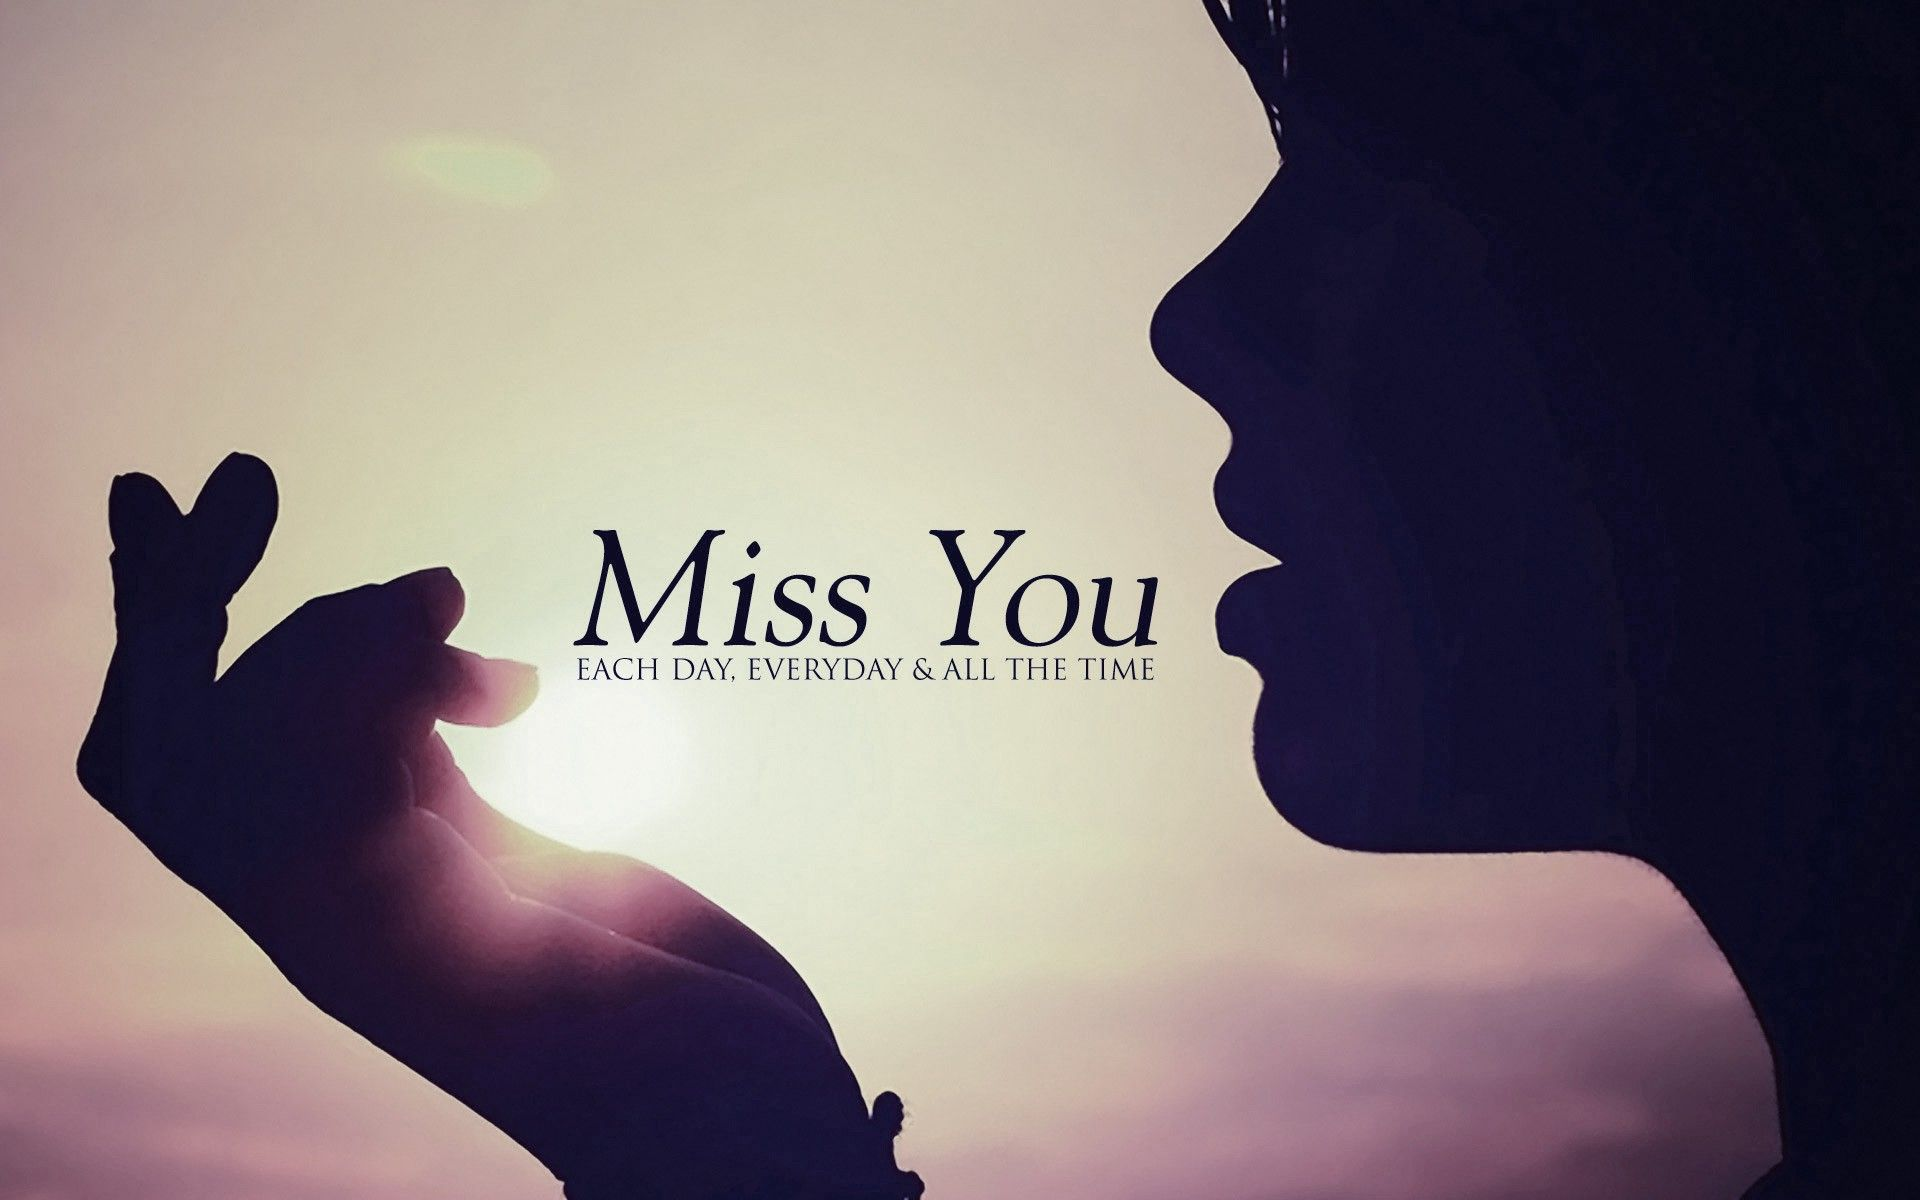 I Love You Quotes: Miss You Sad Wallpaper With Quotes Sayings